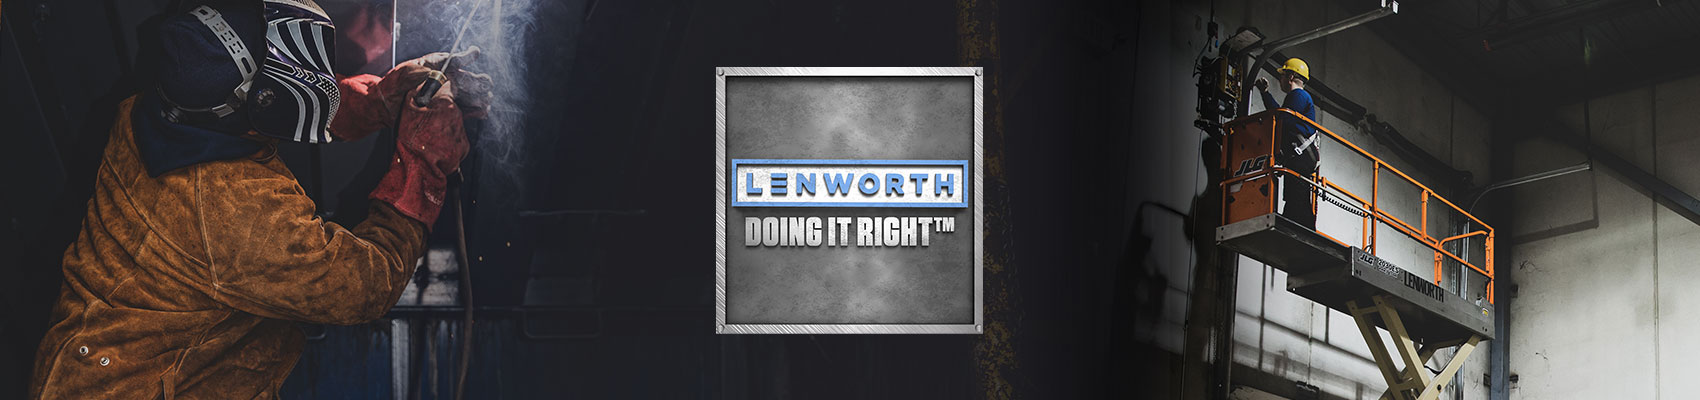 doing it right with lenworth